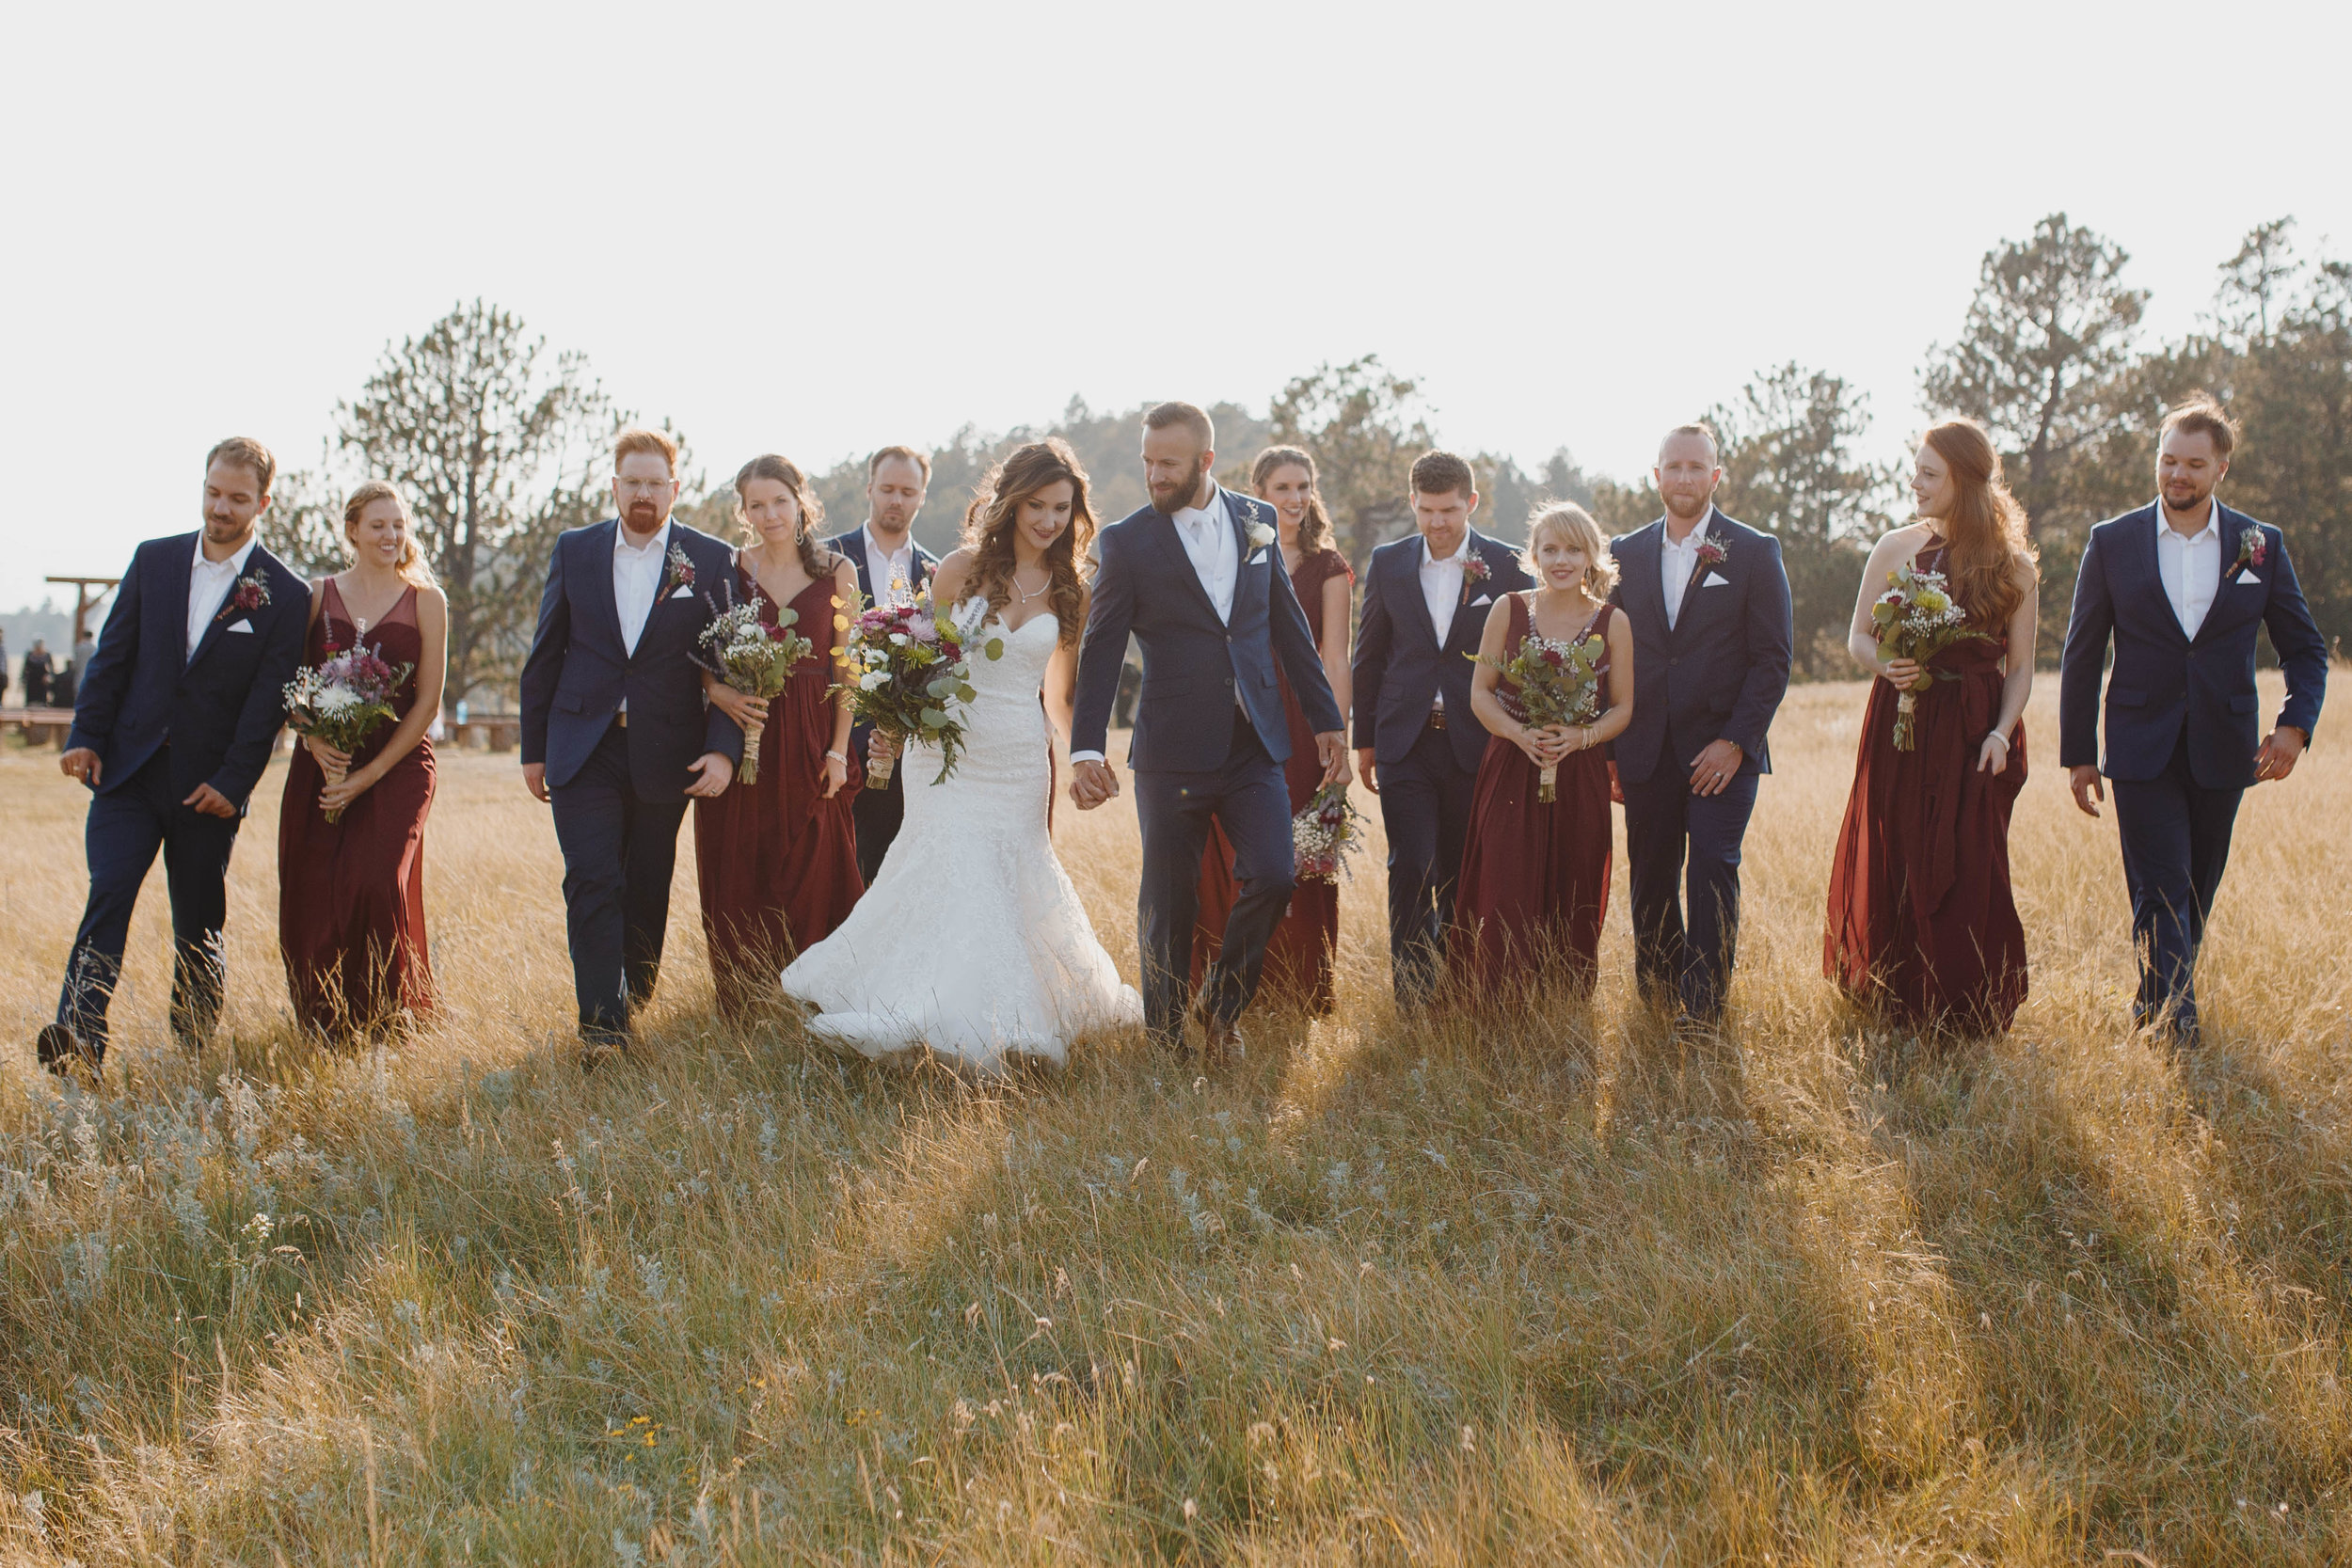 fischerwedding-174.jpg